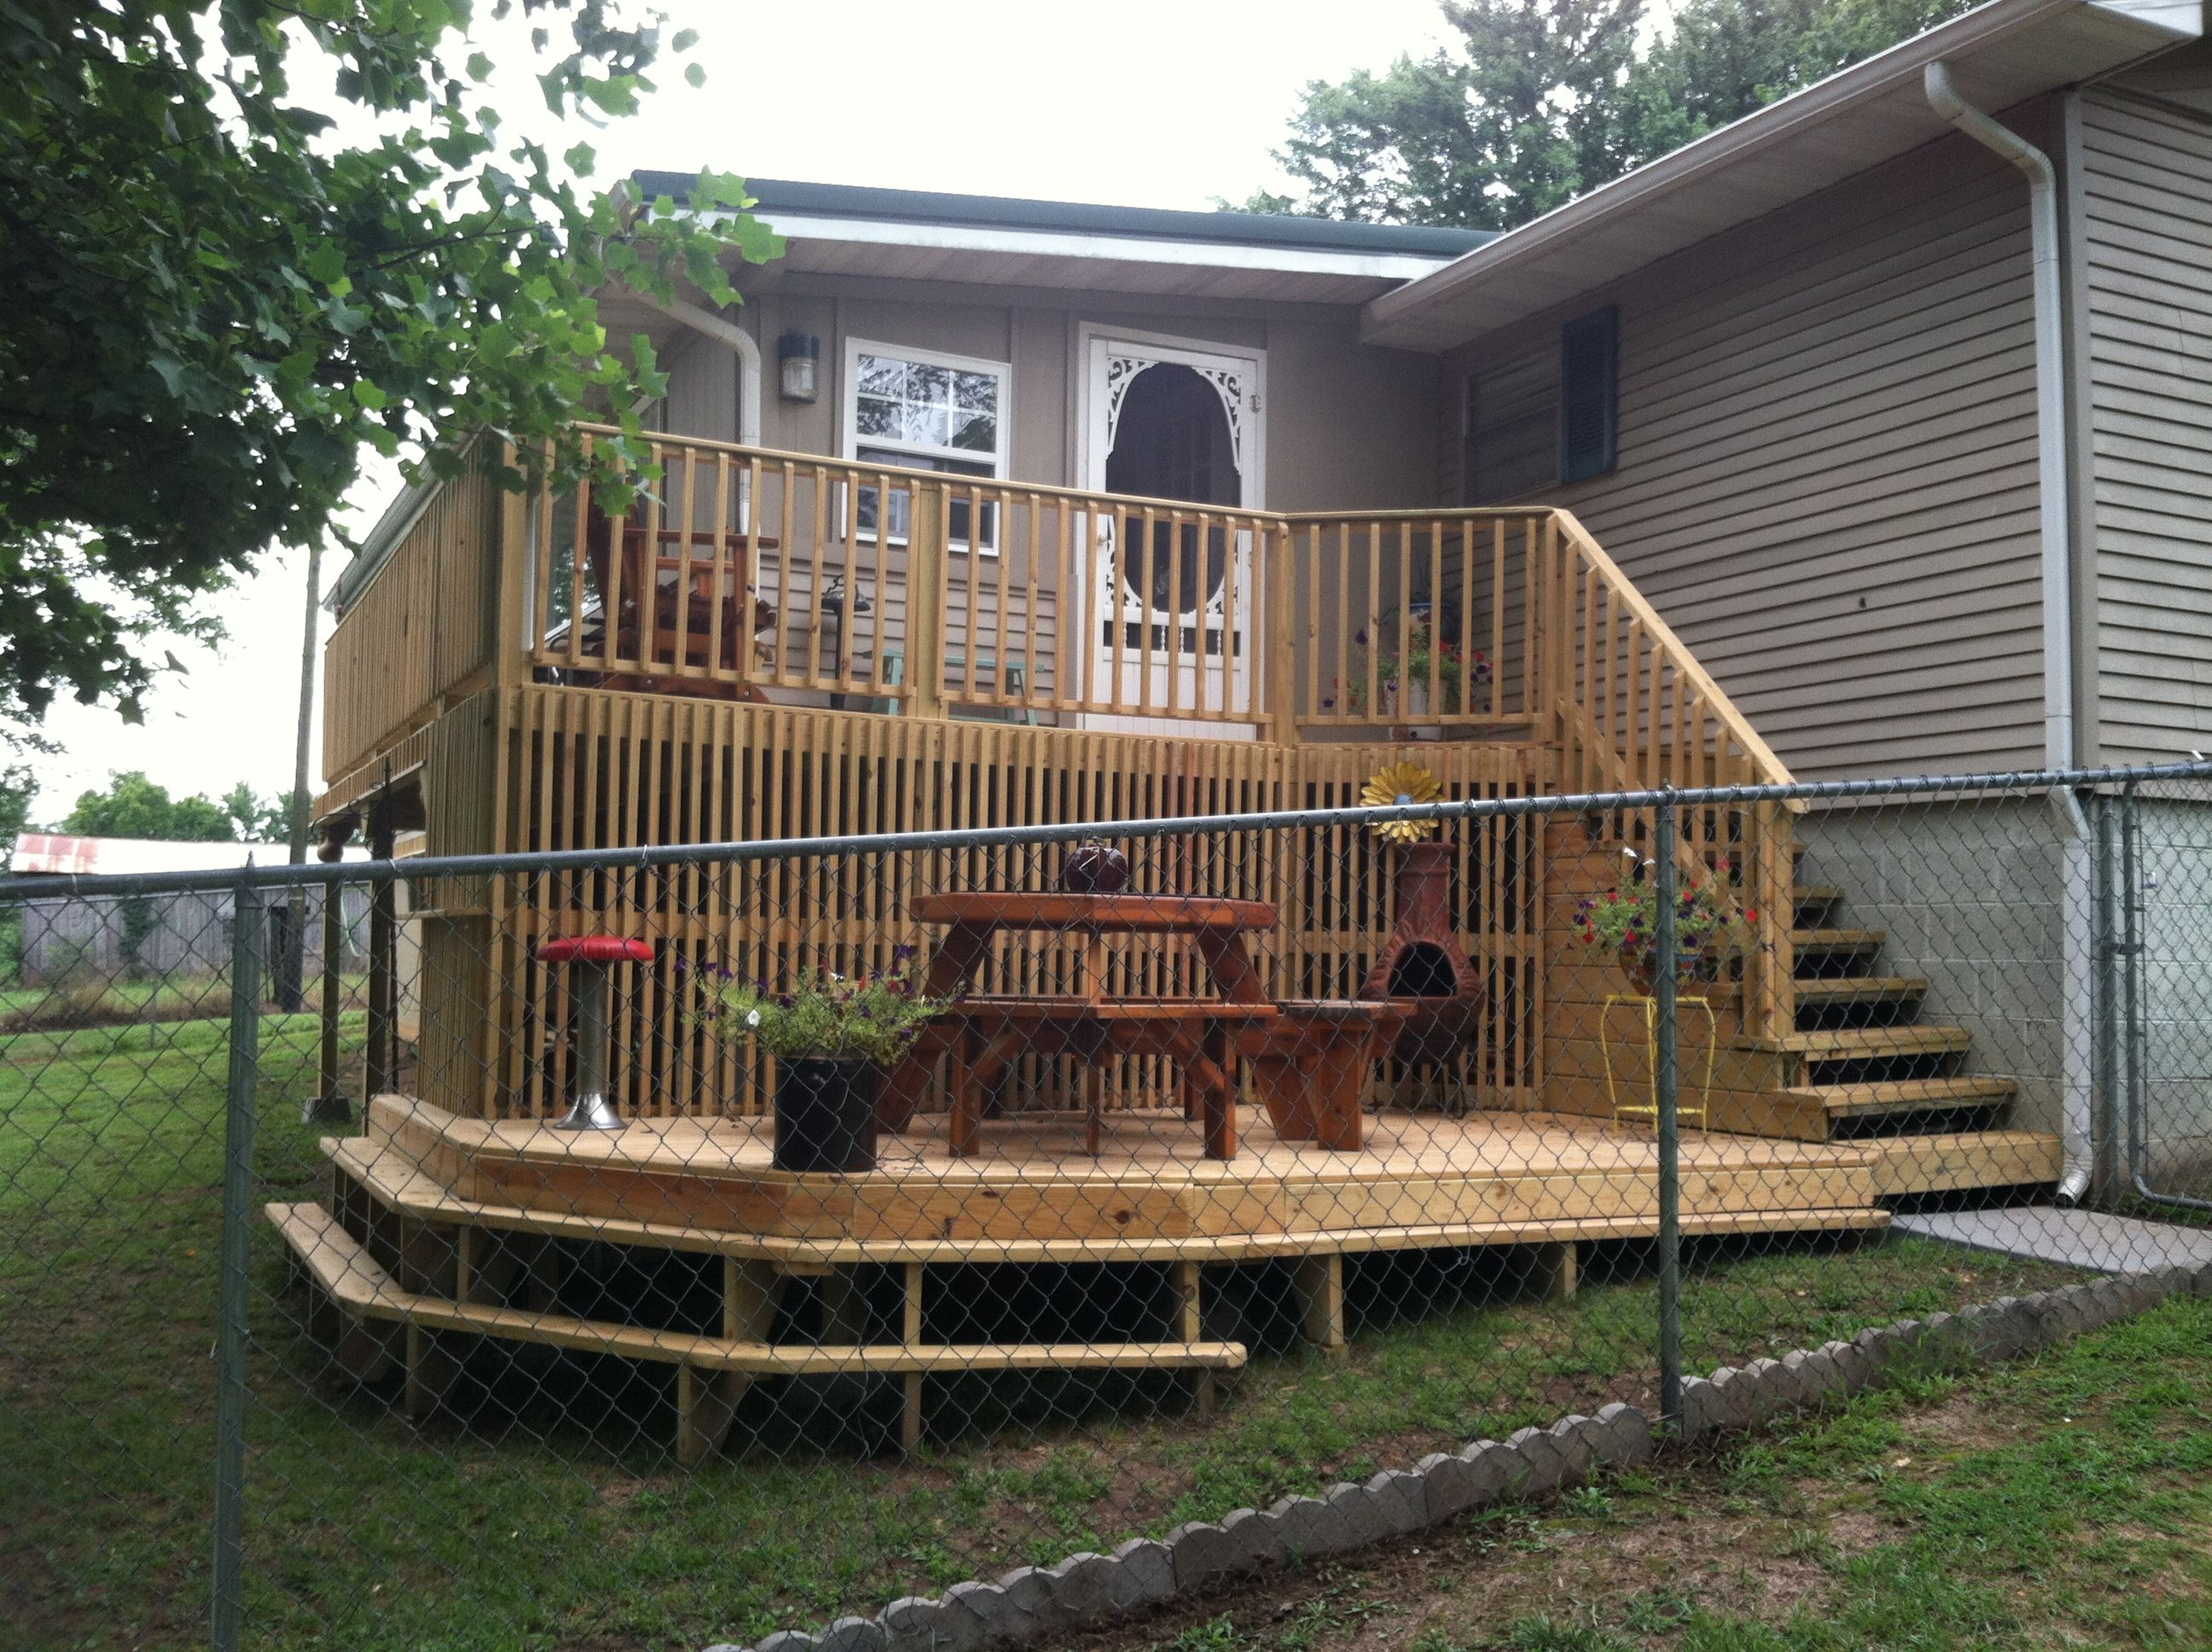 Split Level Porch Deck On My Home My First One Decks And Porches Diy Deck Outside Patio